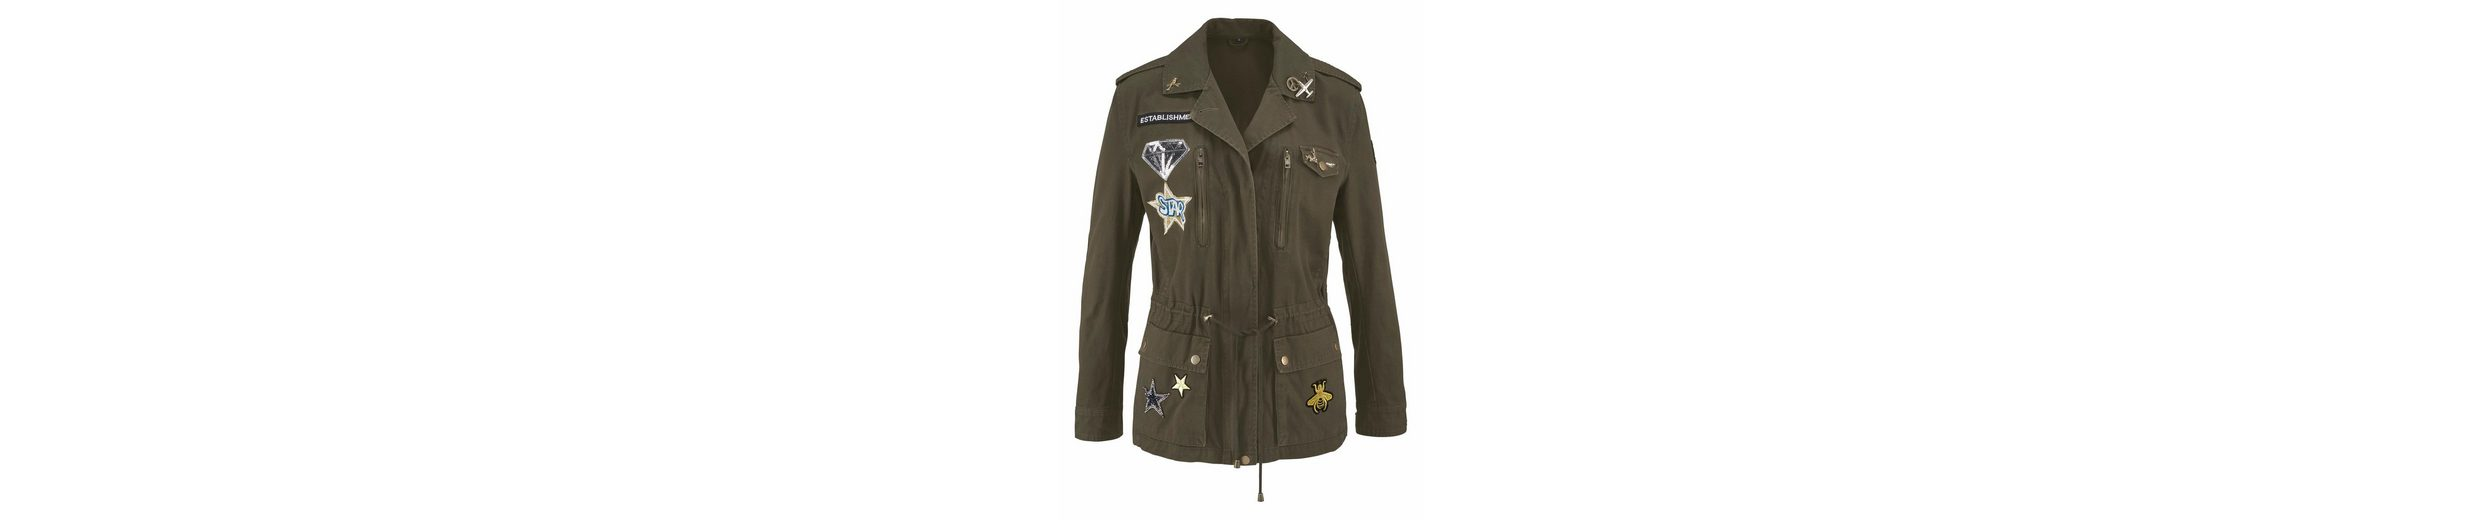 Blue Monkey Military-Blazer, im Militarylook mit Badges und Pins